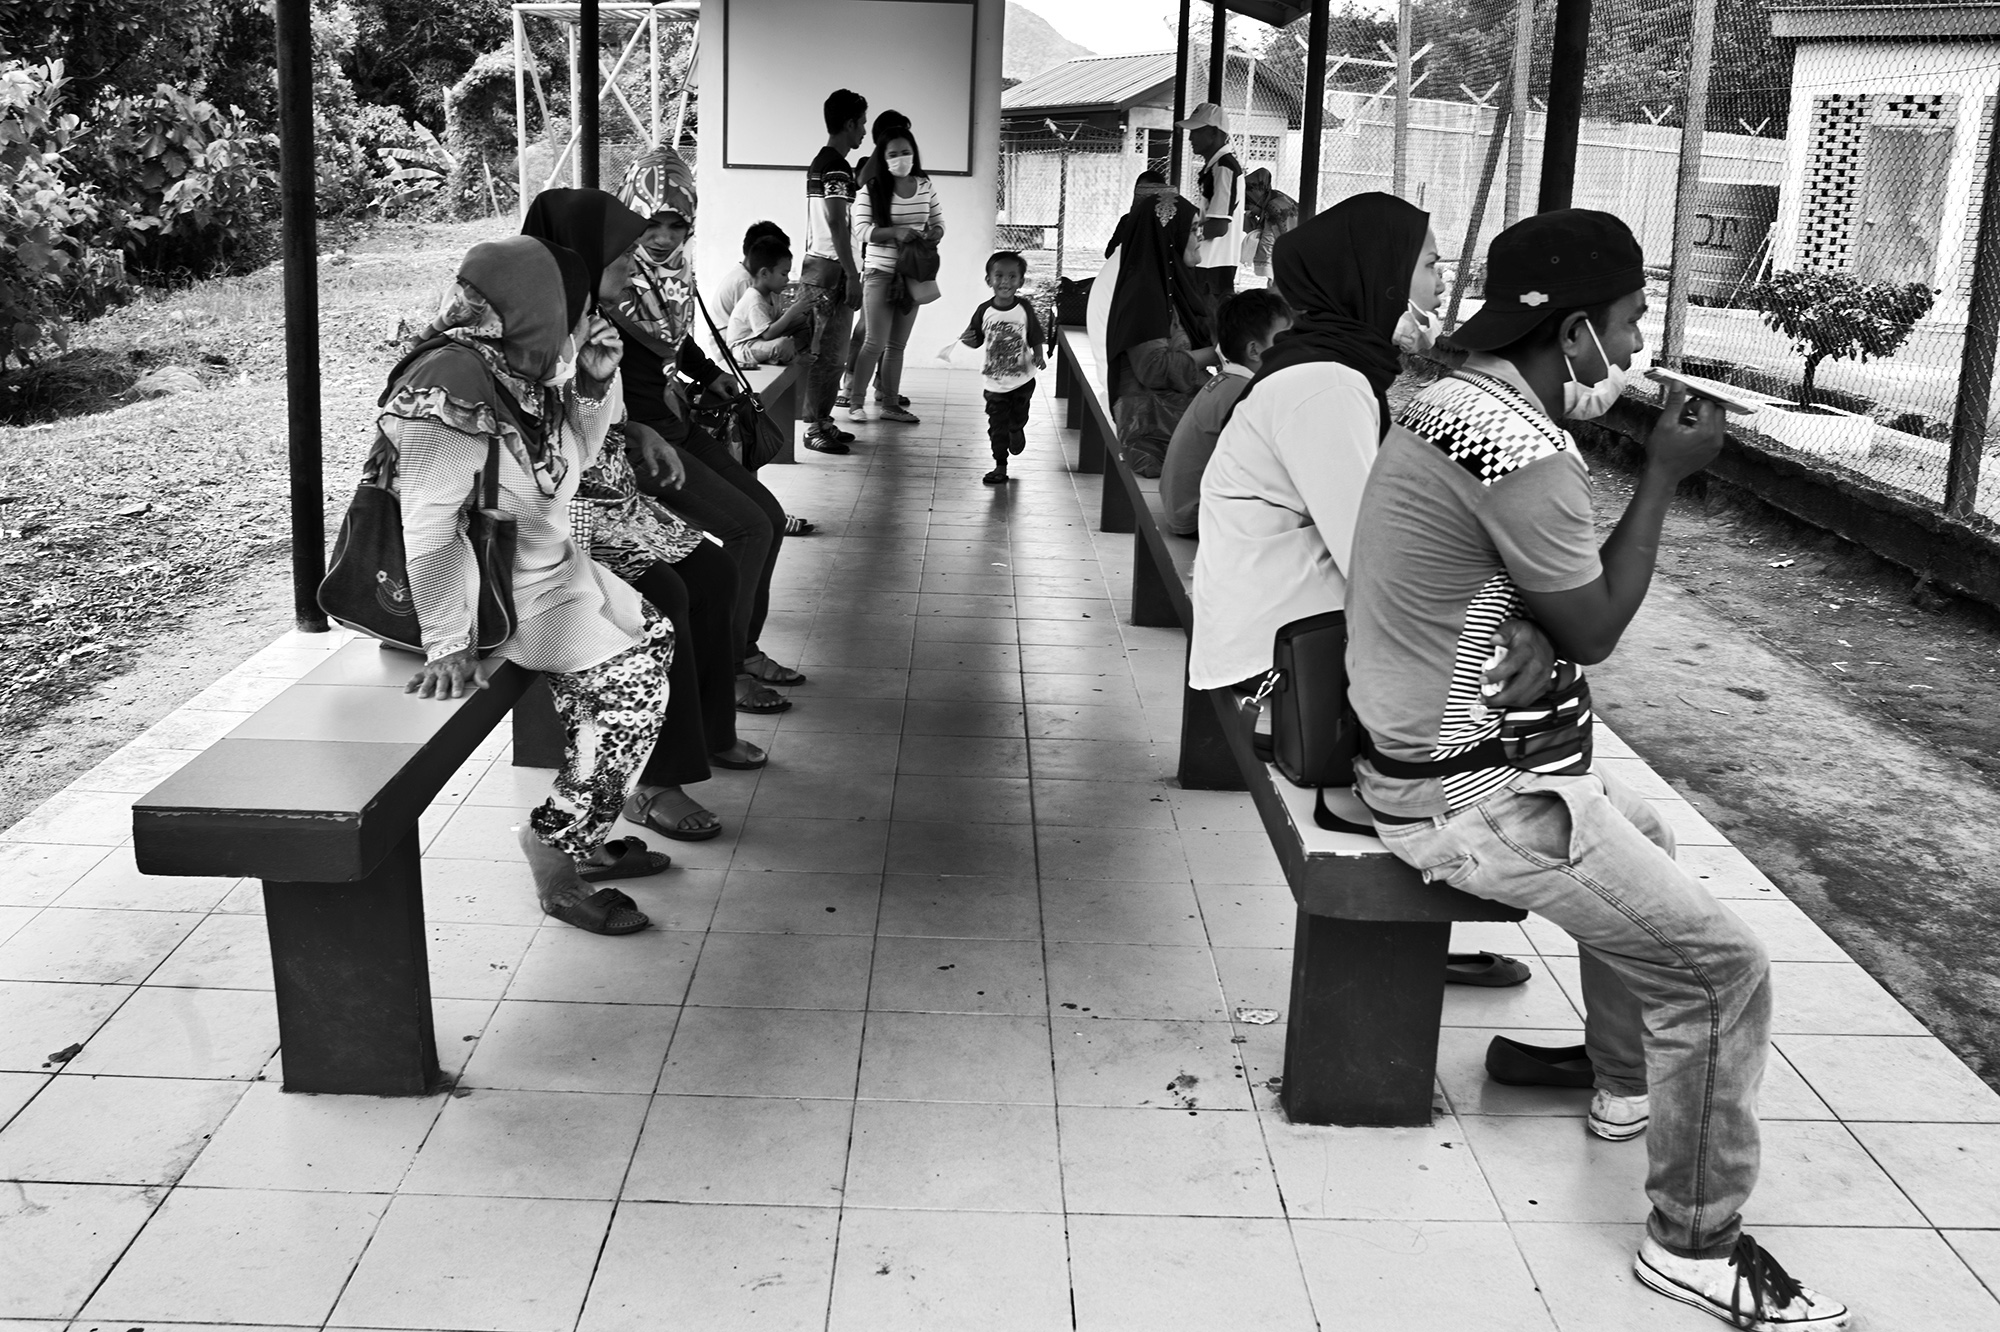 Families sit in the waiting area outside the Manggatal Detention Center in Kota Kinabalu, Sabah before being permitted to visit relatives in detention.